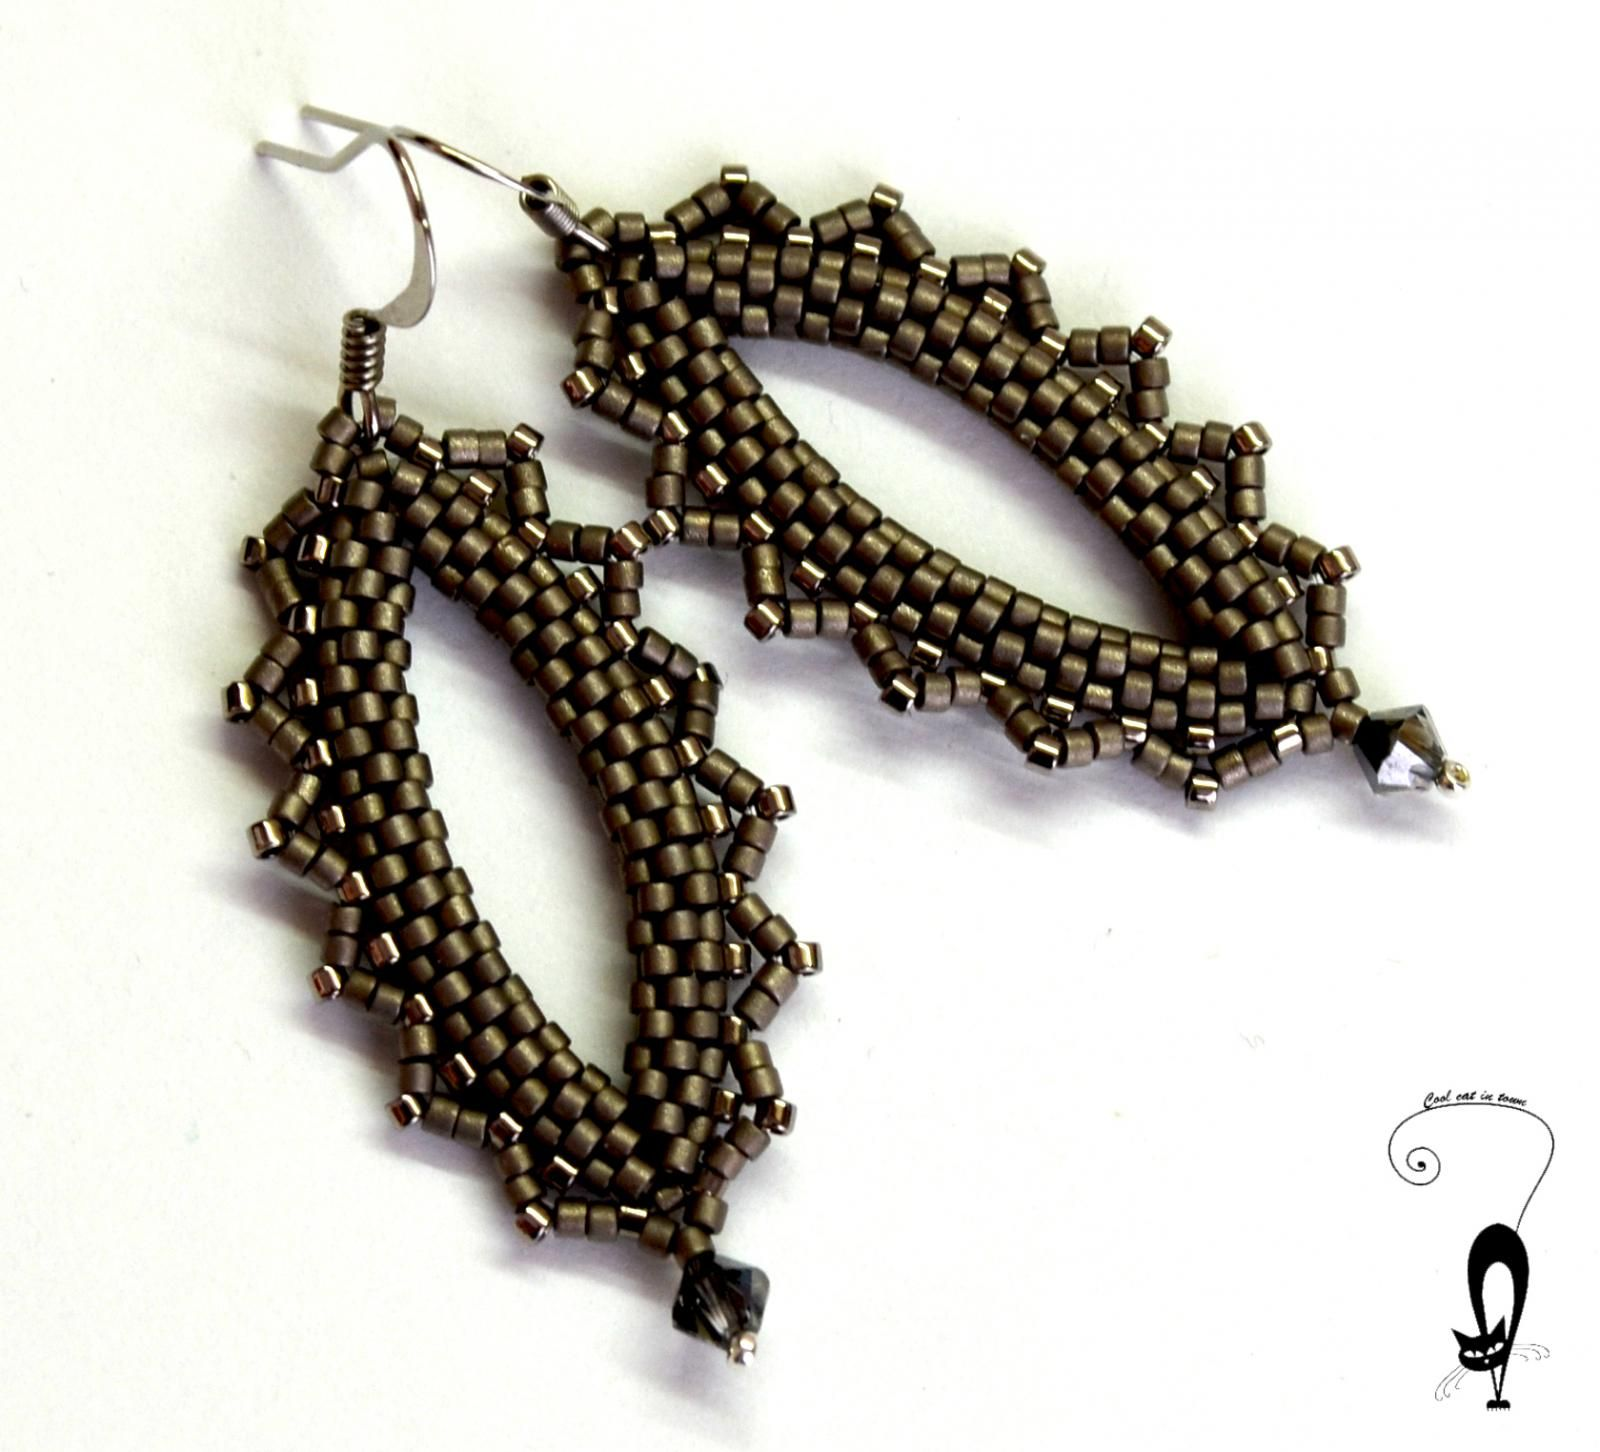 Several master classes on weaving earrings from beads, step-by-step photos and description